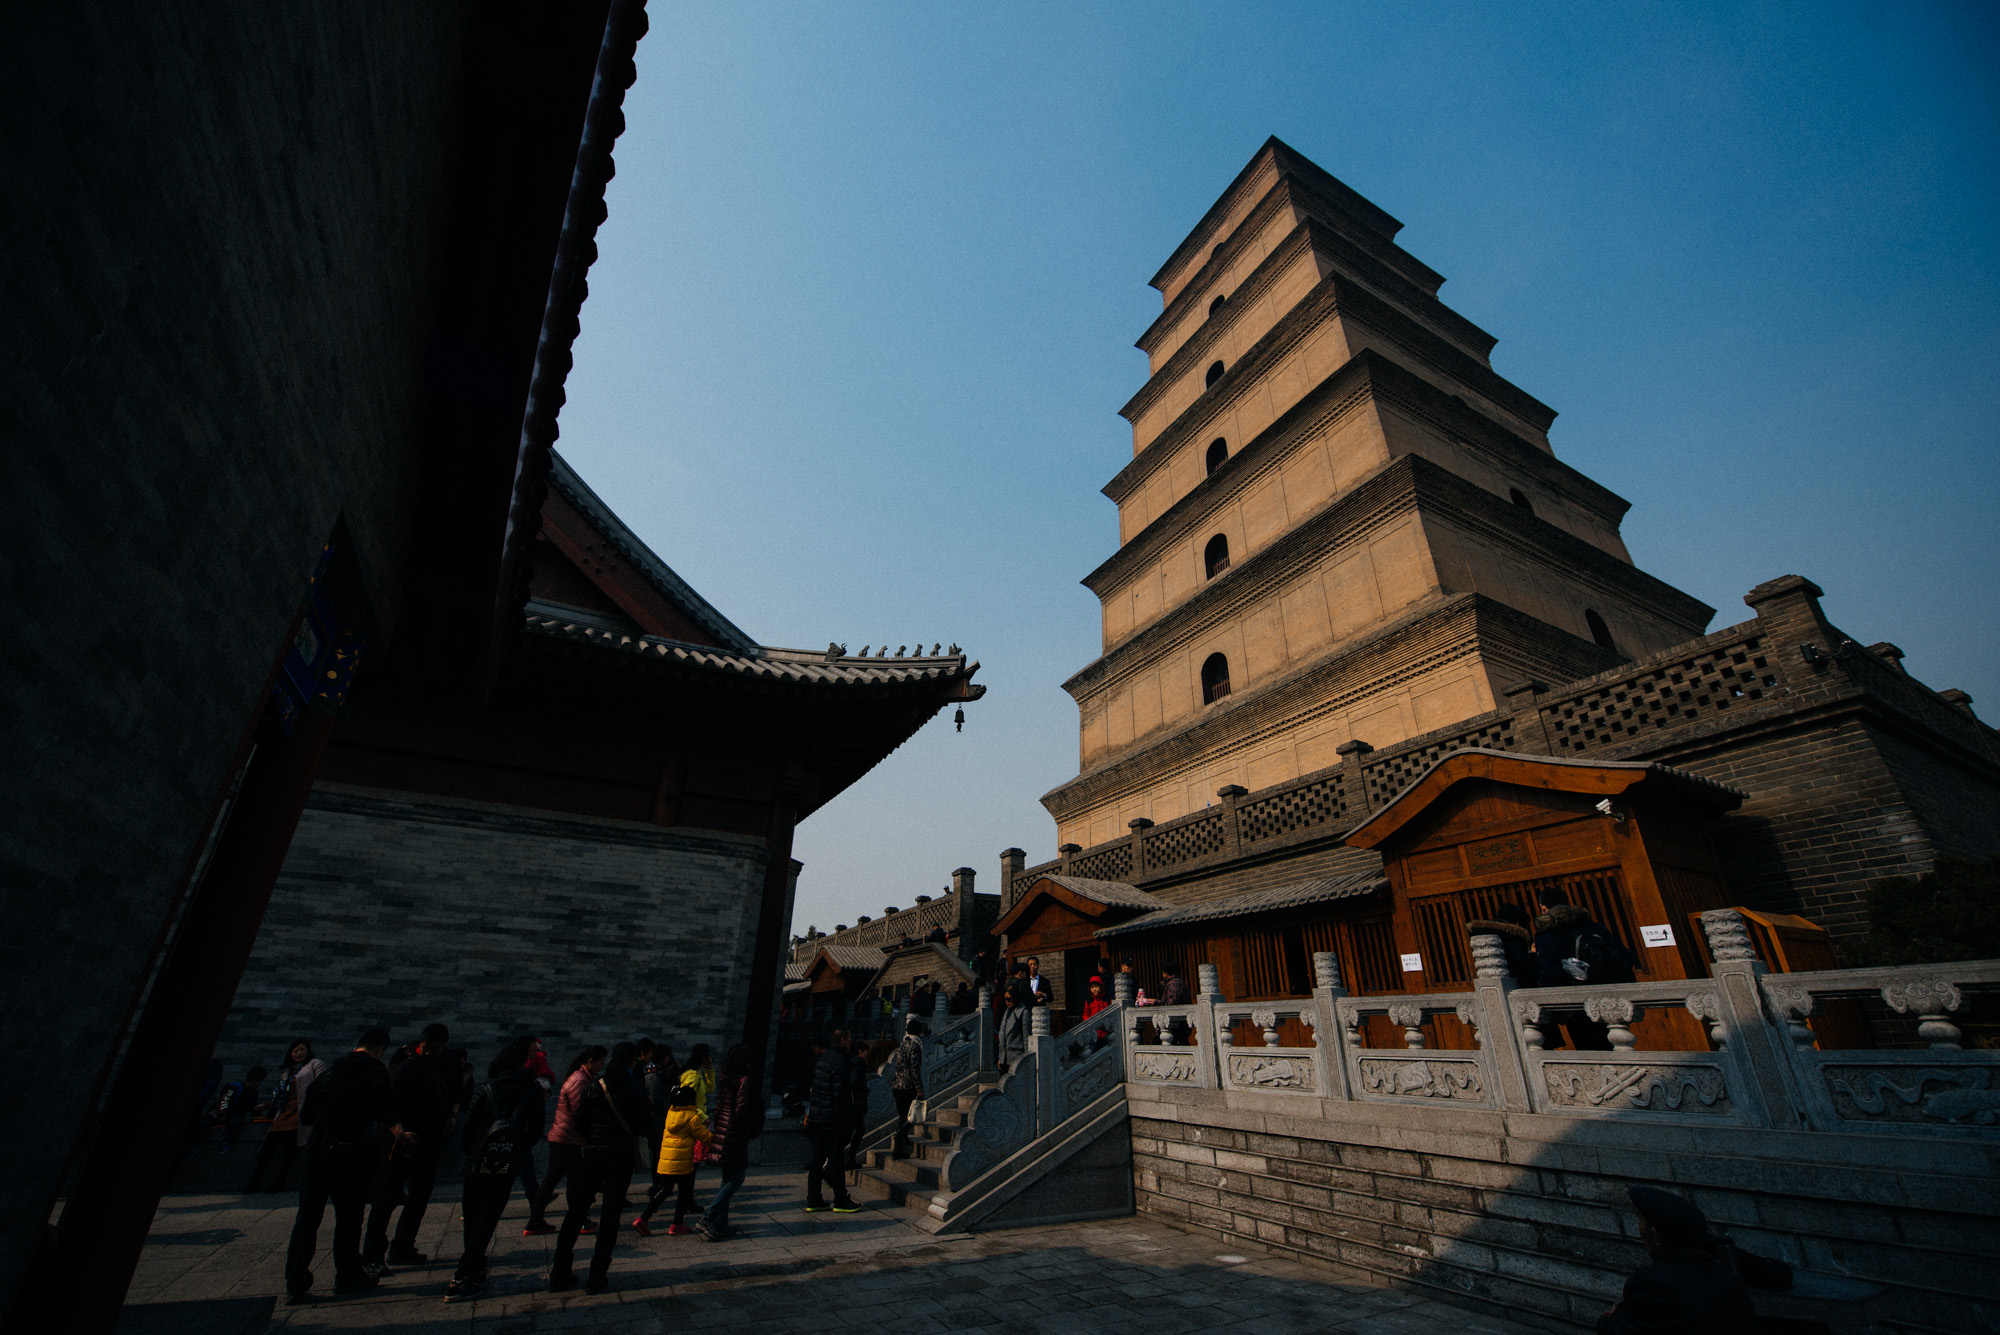 Standing 64m tall and with a history of almost 1000 years, the Giant Wild Goose Pagoda is an unmissable historical spot in Xi'an.